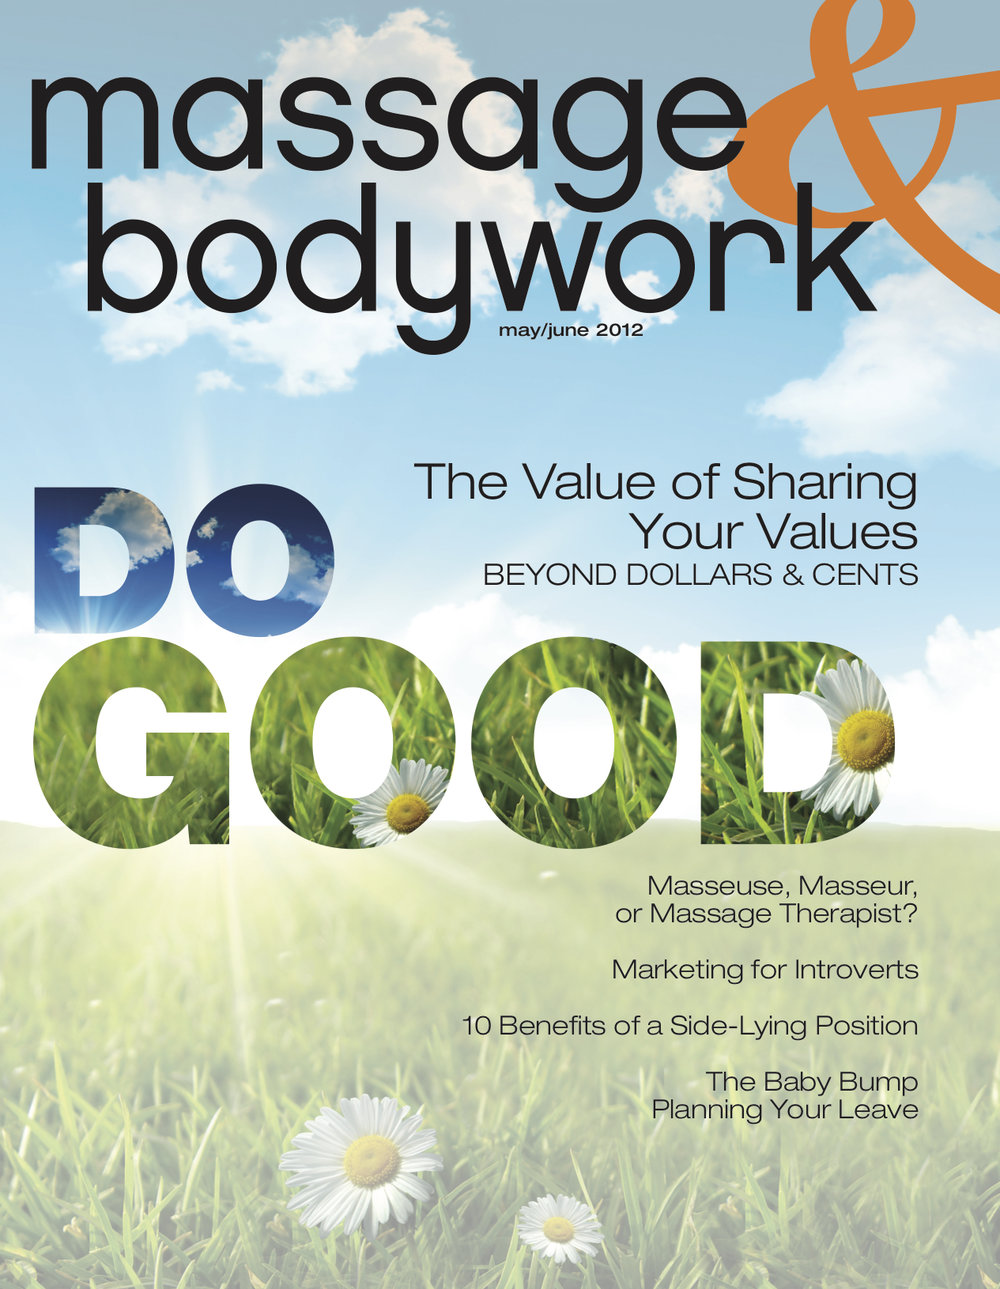 Massage & Bodywork - May / June 2012